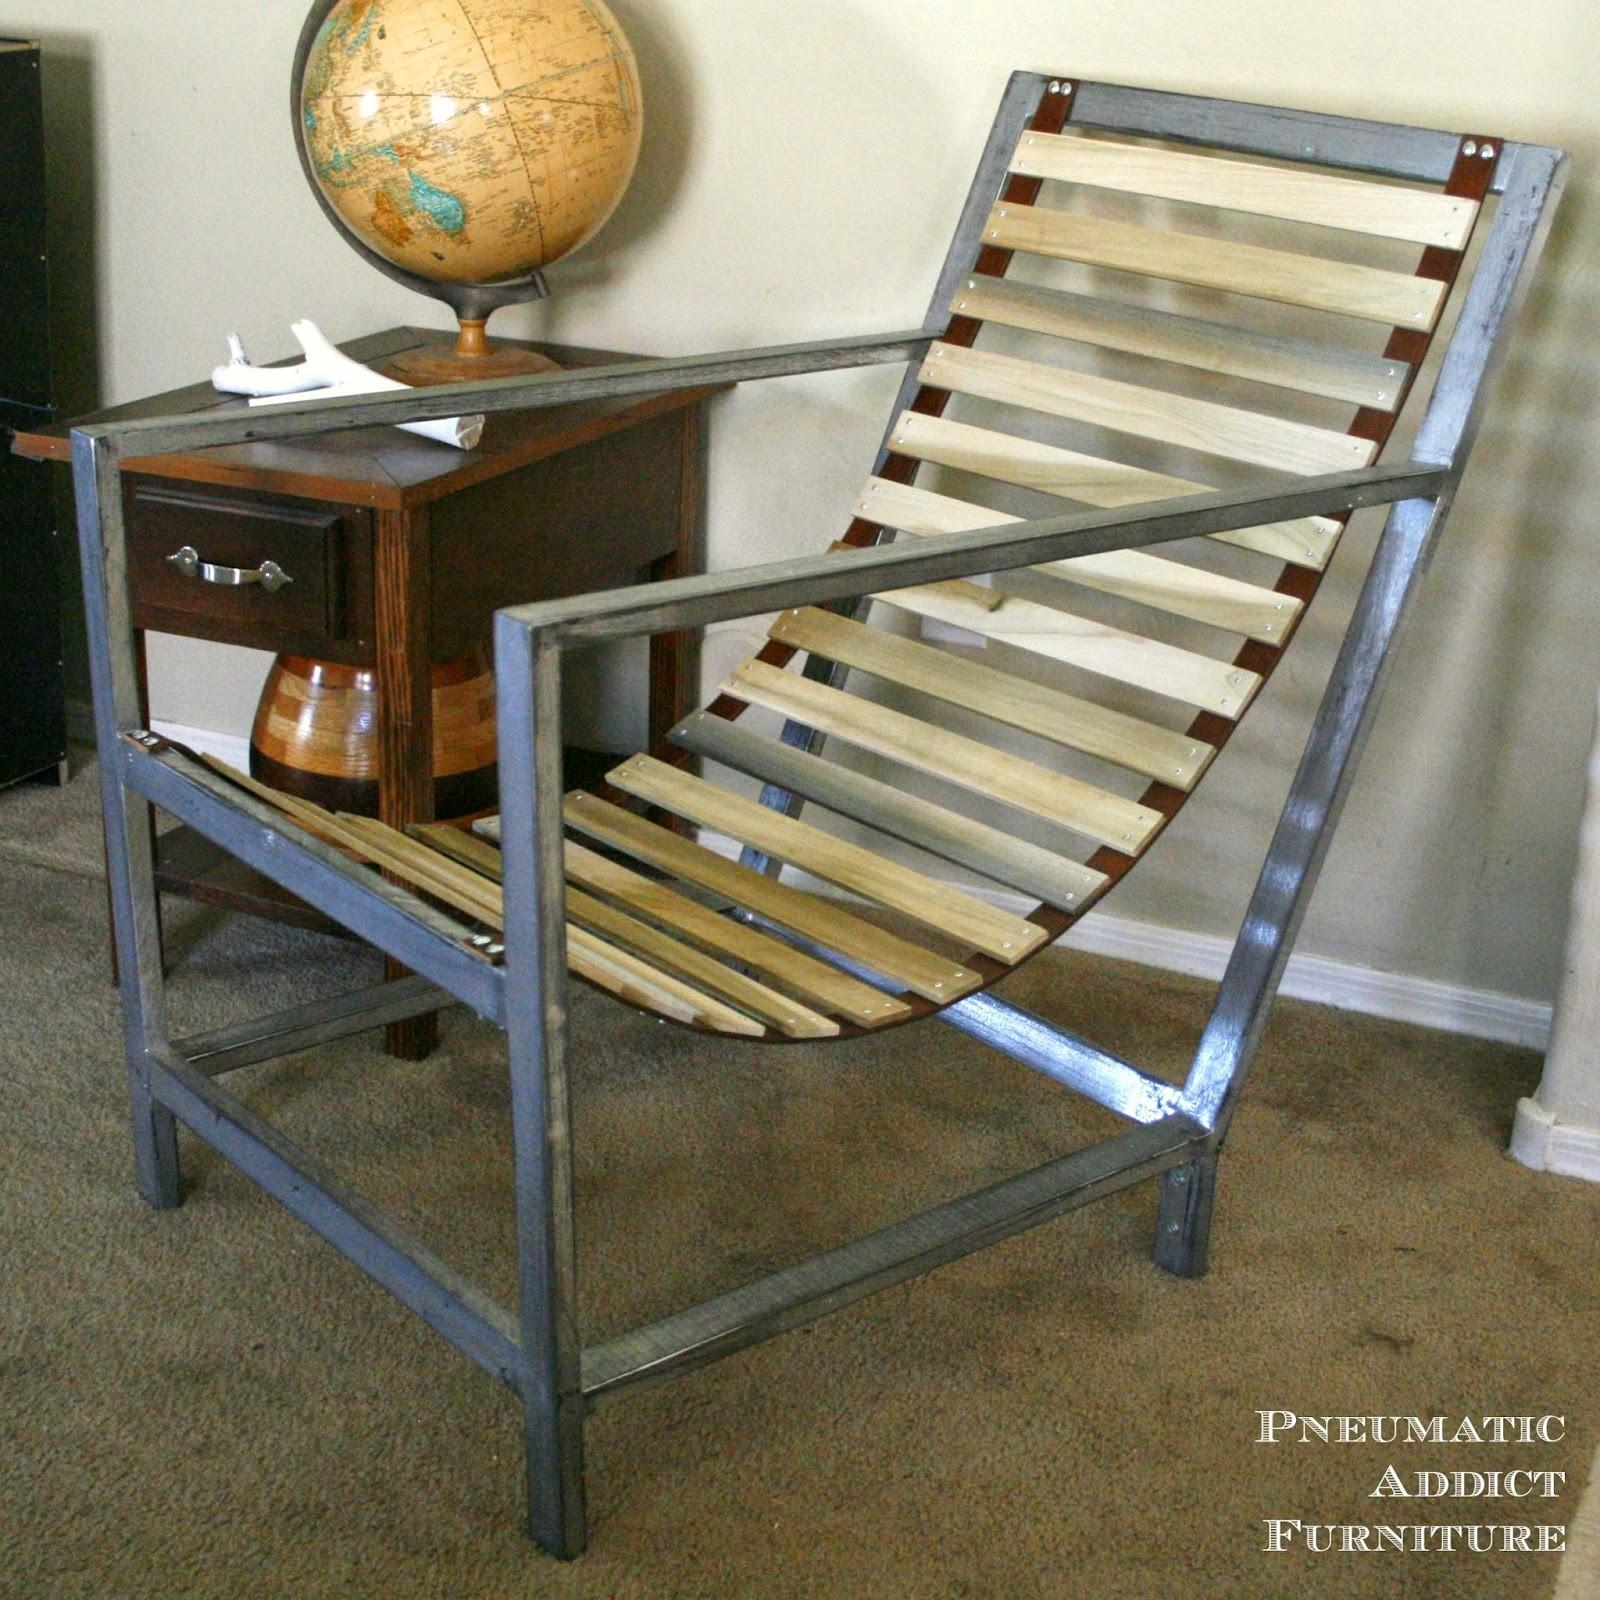 Pneumatic Addict Wood Leather Sling Chair